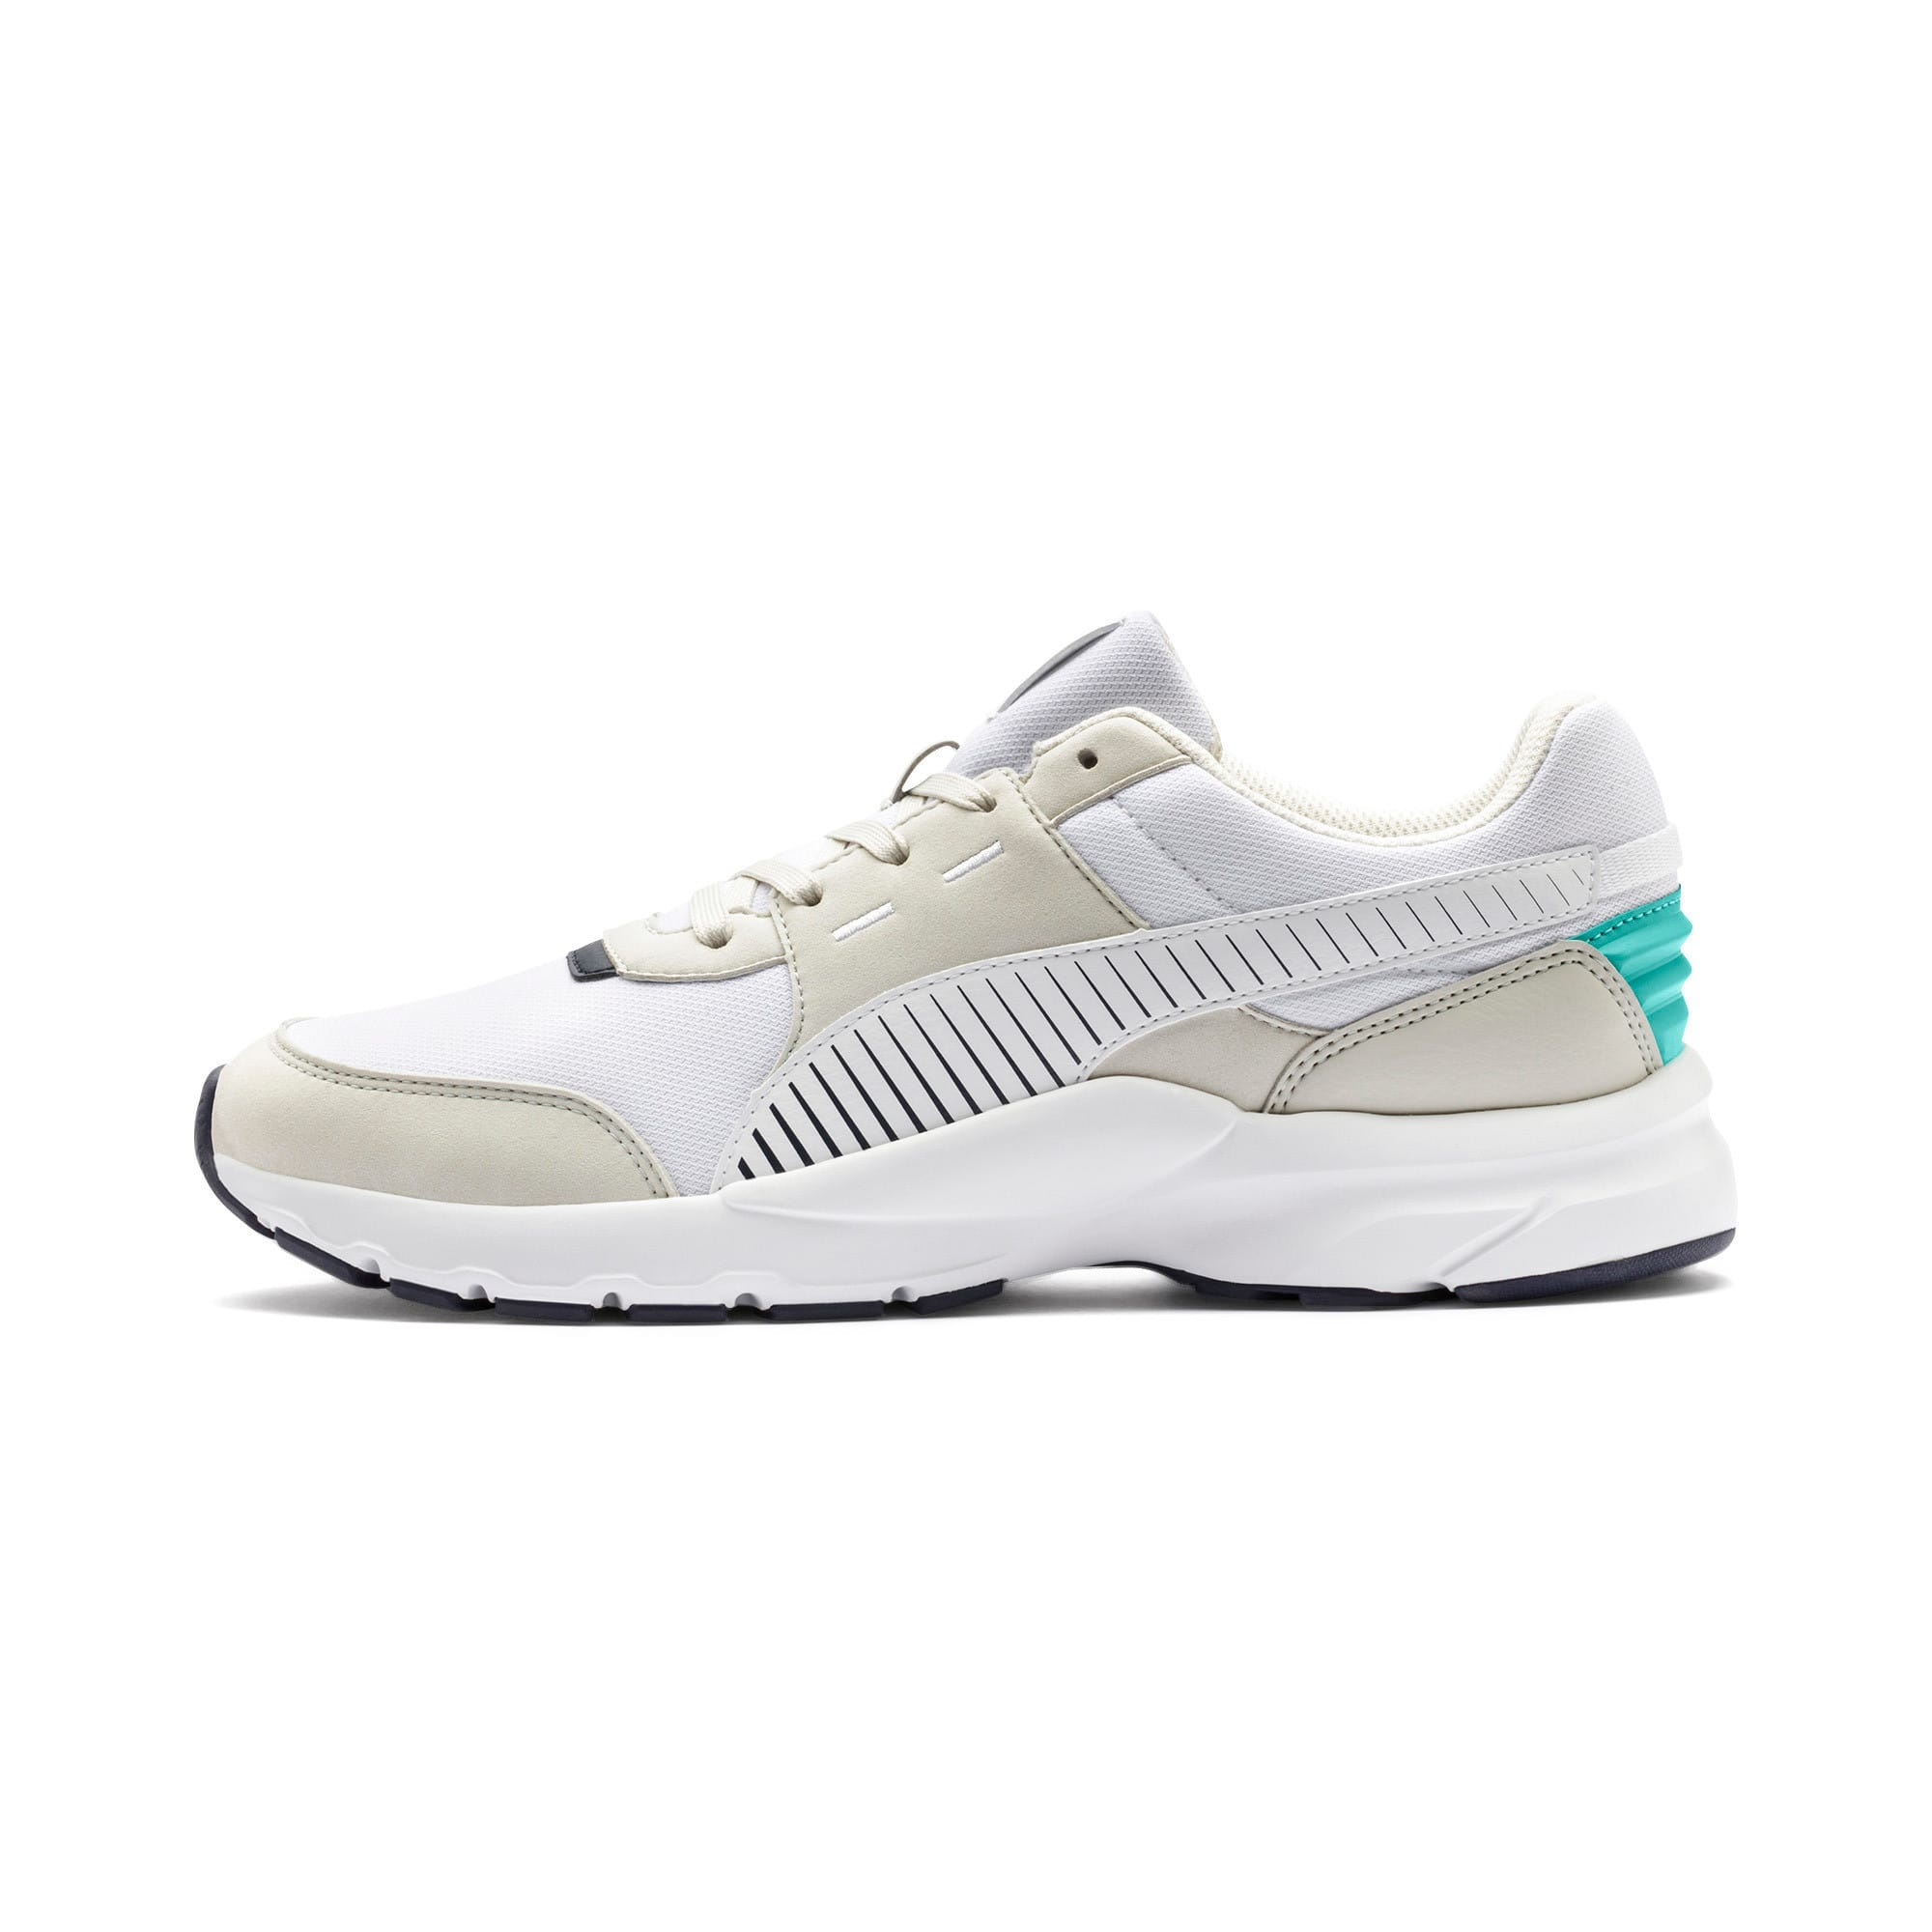 Thumbnail 1 of Future Runner Running Shoes, Wht-G Gray-Peacoat-Turquoise, medium